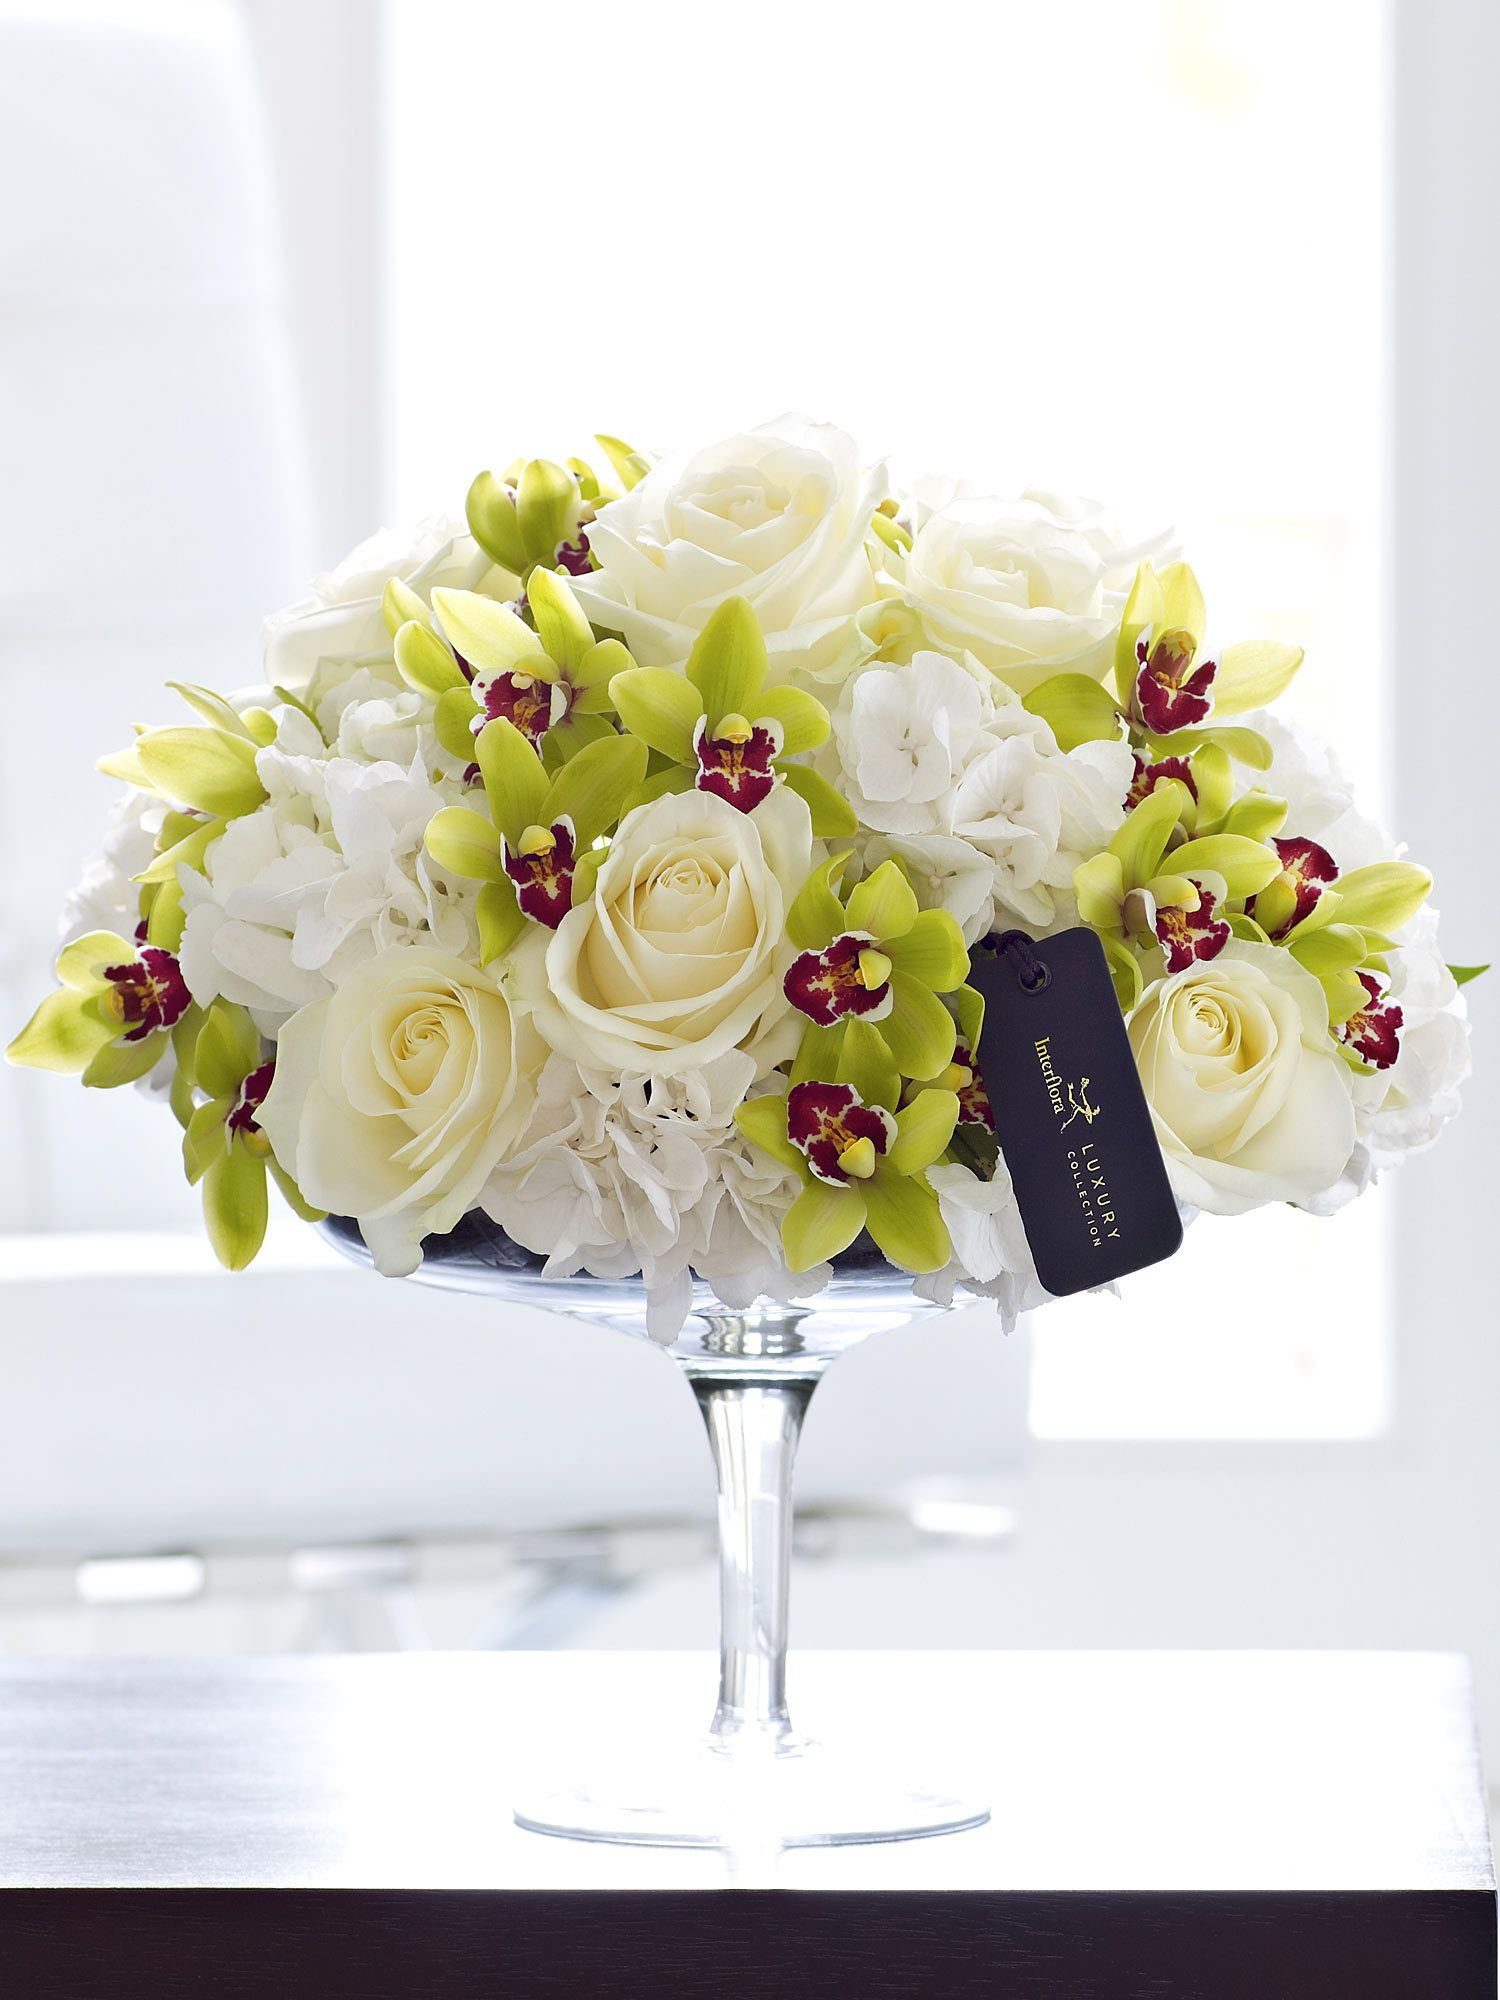 Luxury Rose, Hydrangea And Mini Cymbidium Orchid Arrangement  White